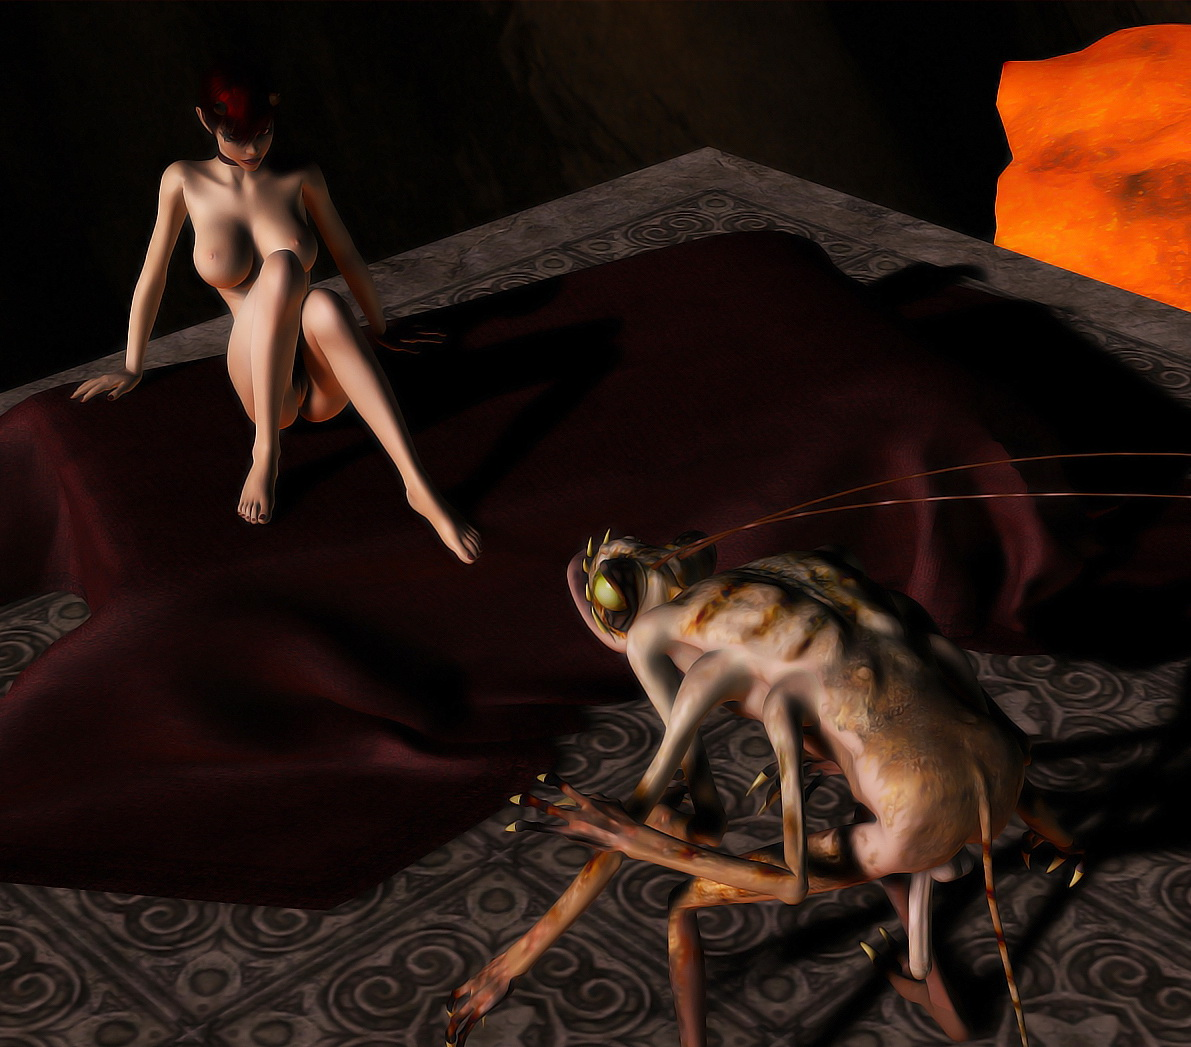 Insect girl sex fantasy -incest erotic films